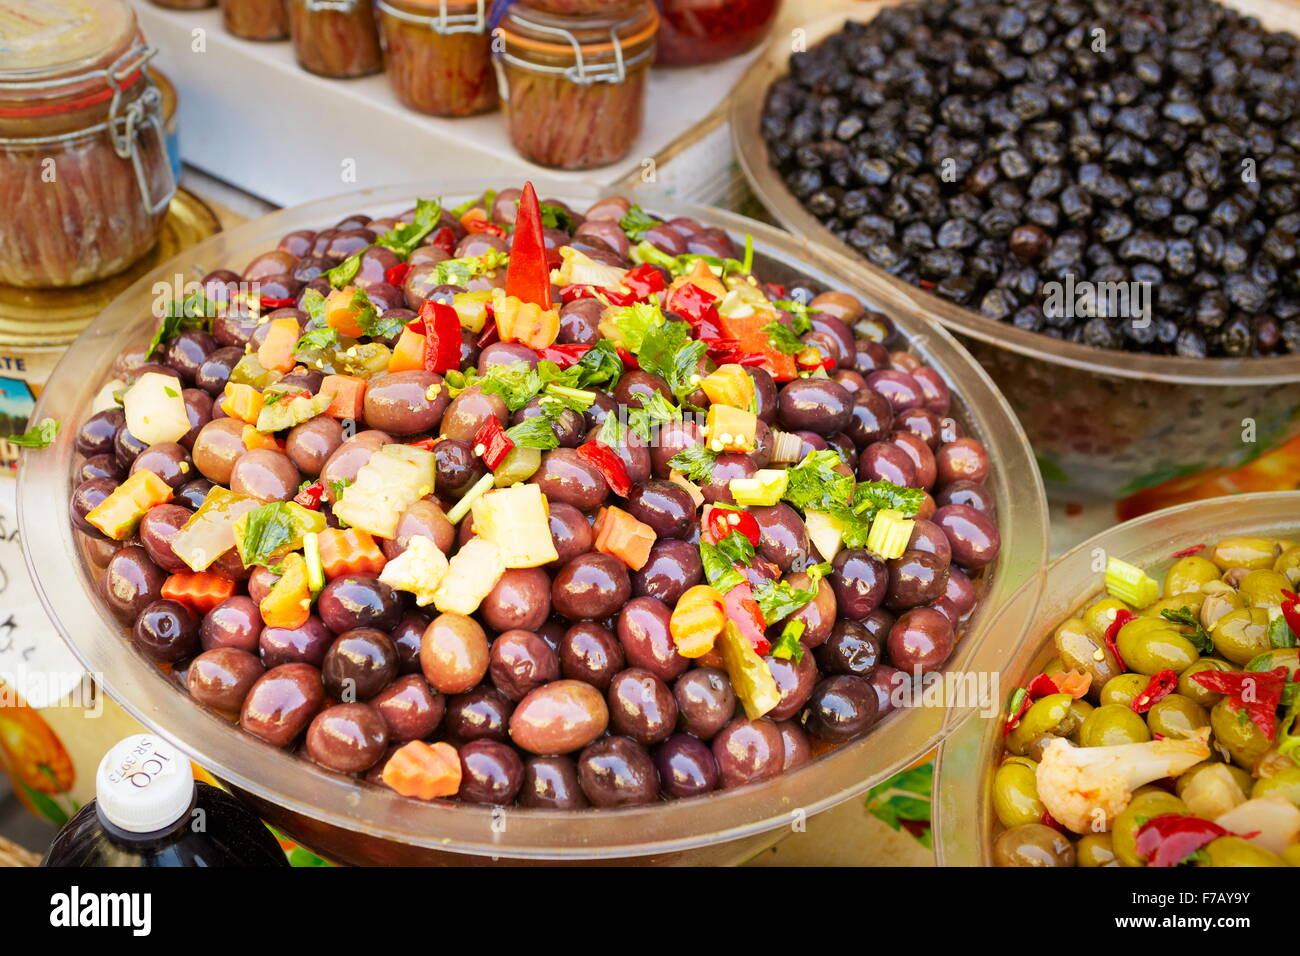 Olives, food market of Ortigia, Syracuse, Sicily, Italy - Stock Image